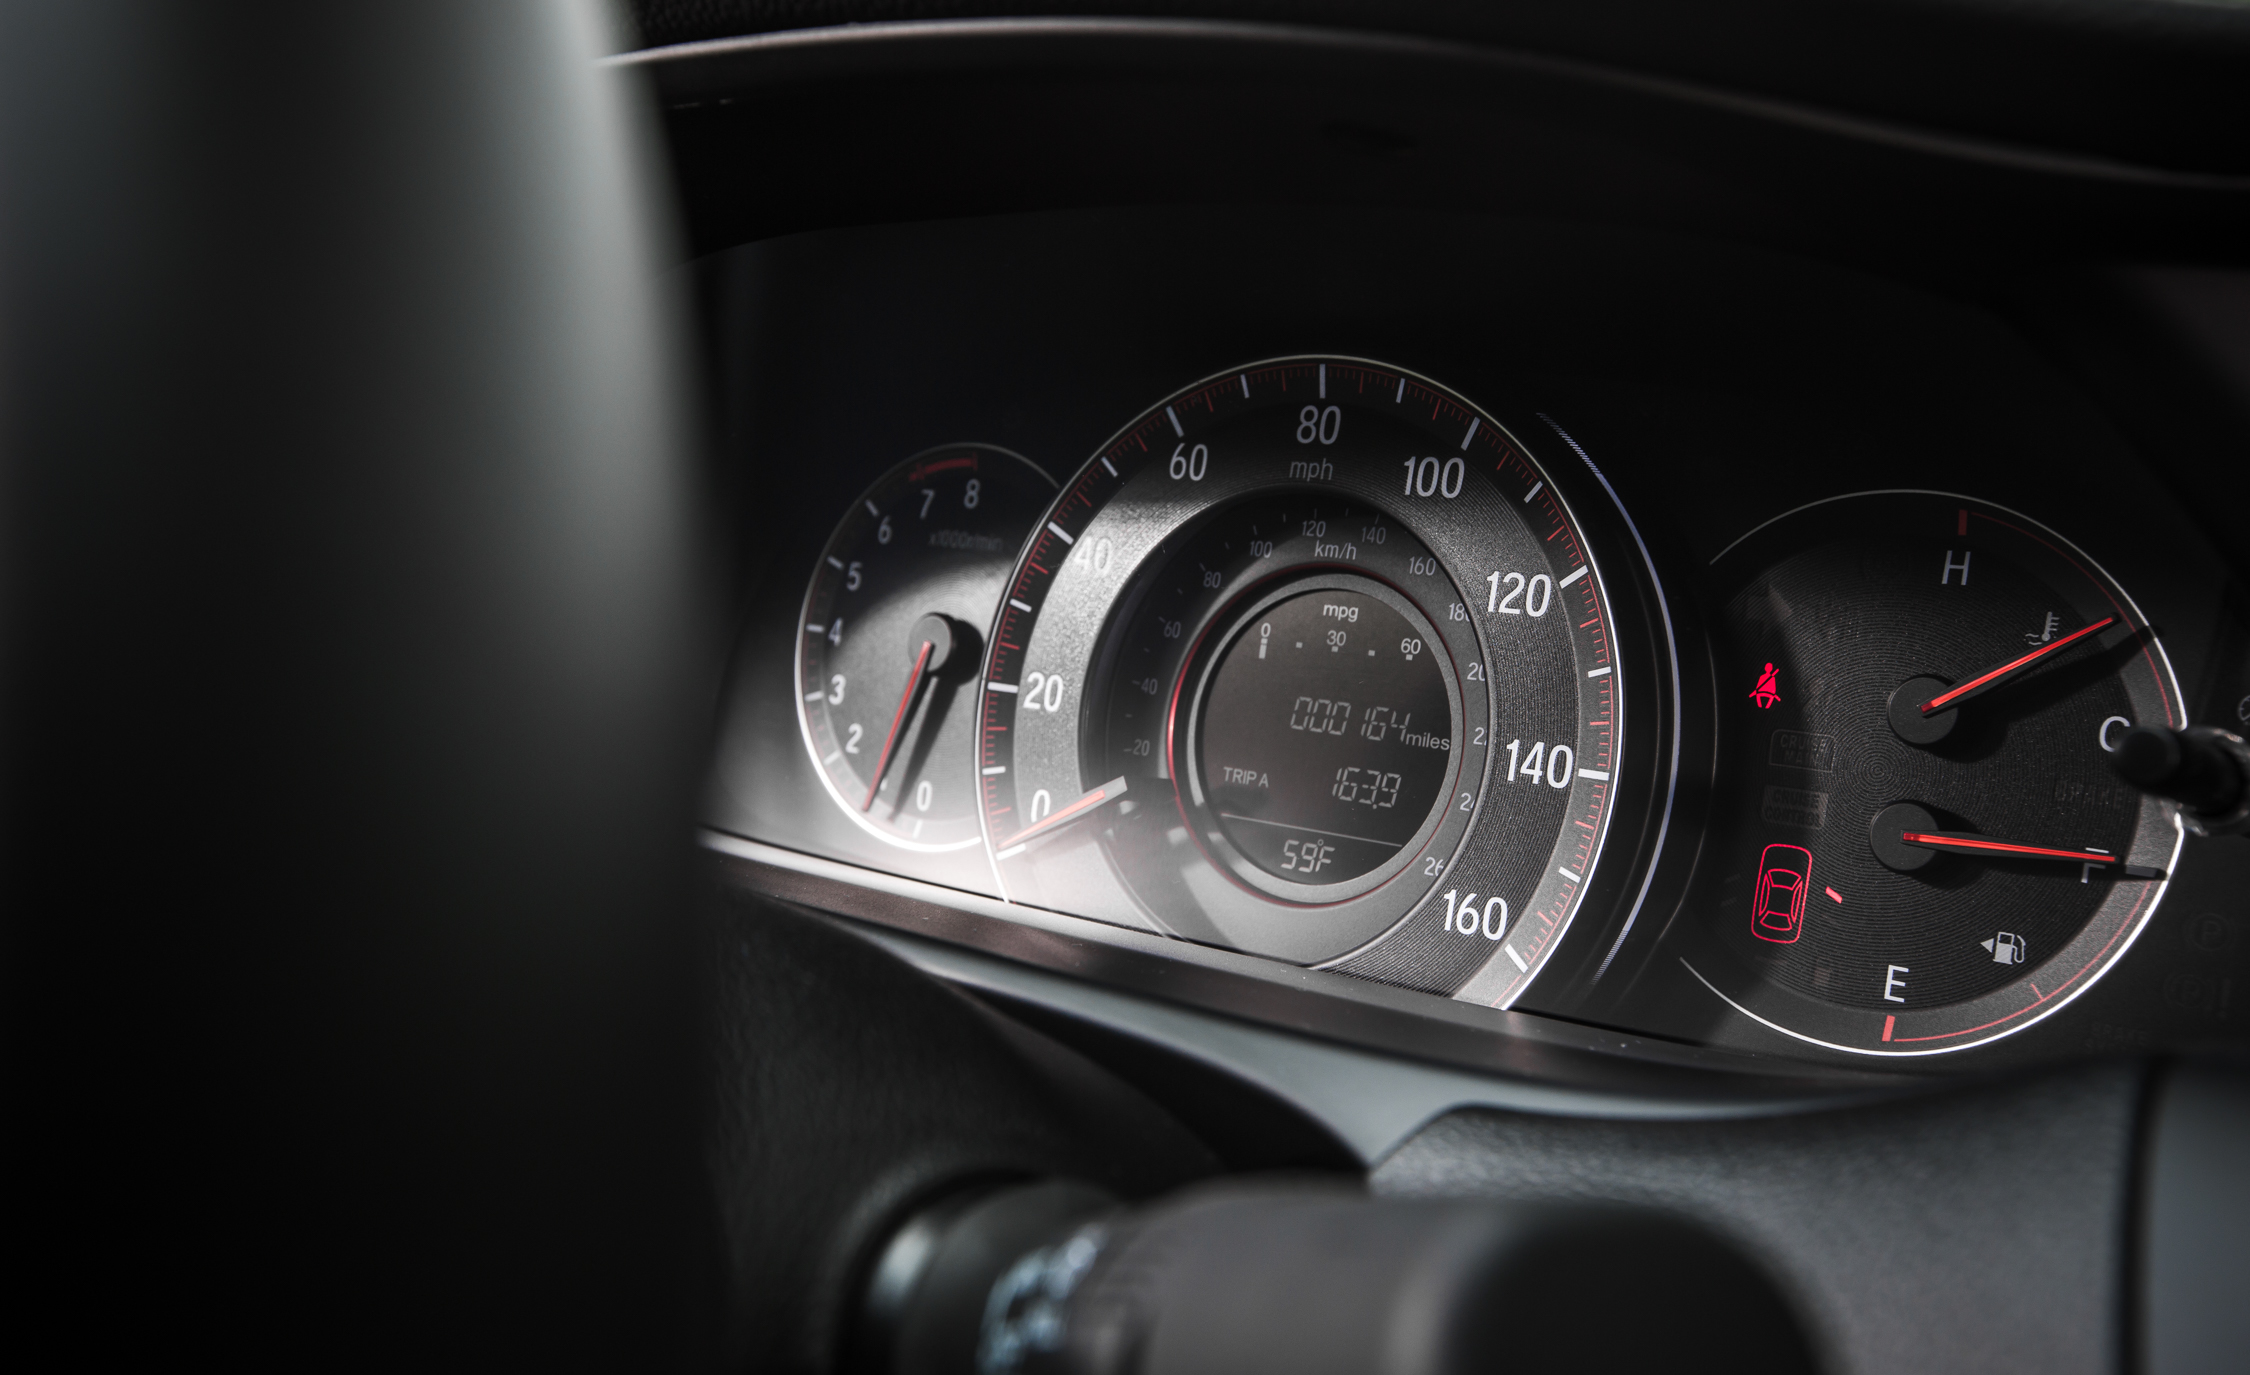 2016 Honda Accord Sport Interior Speedometer